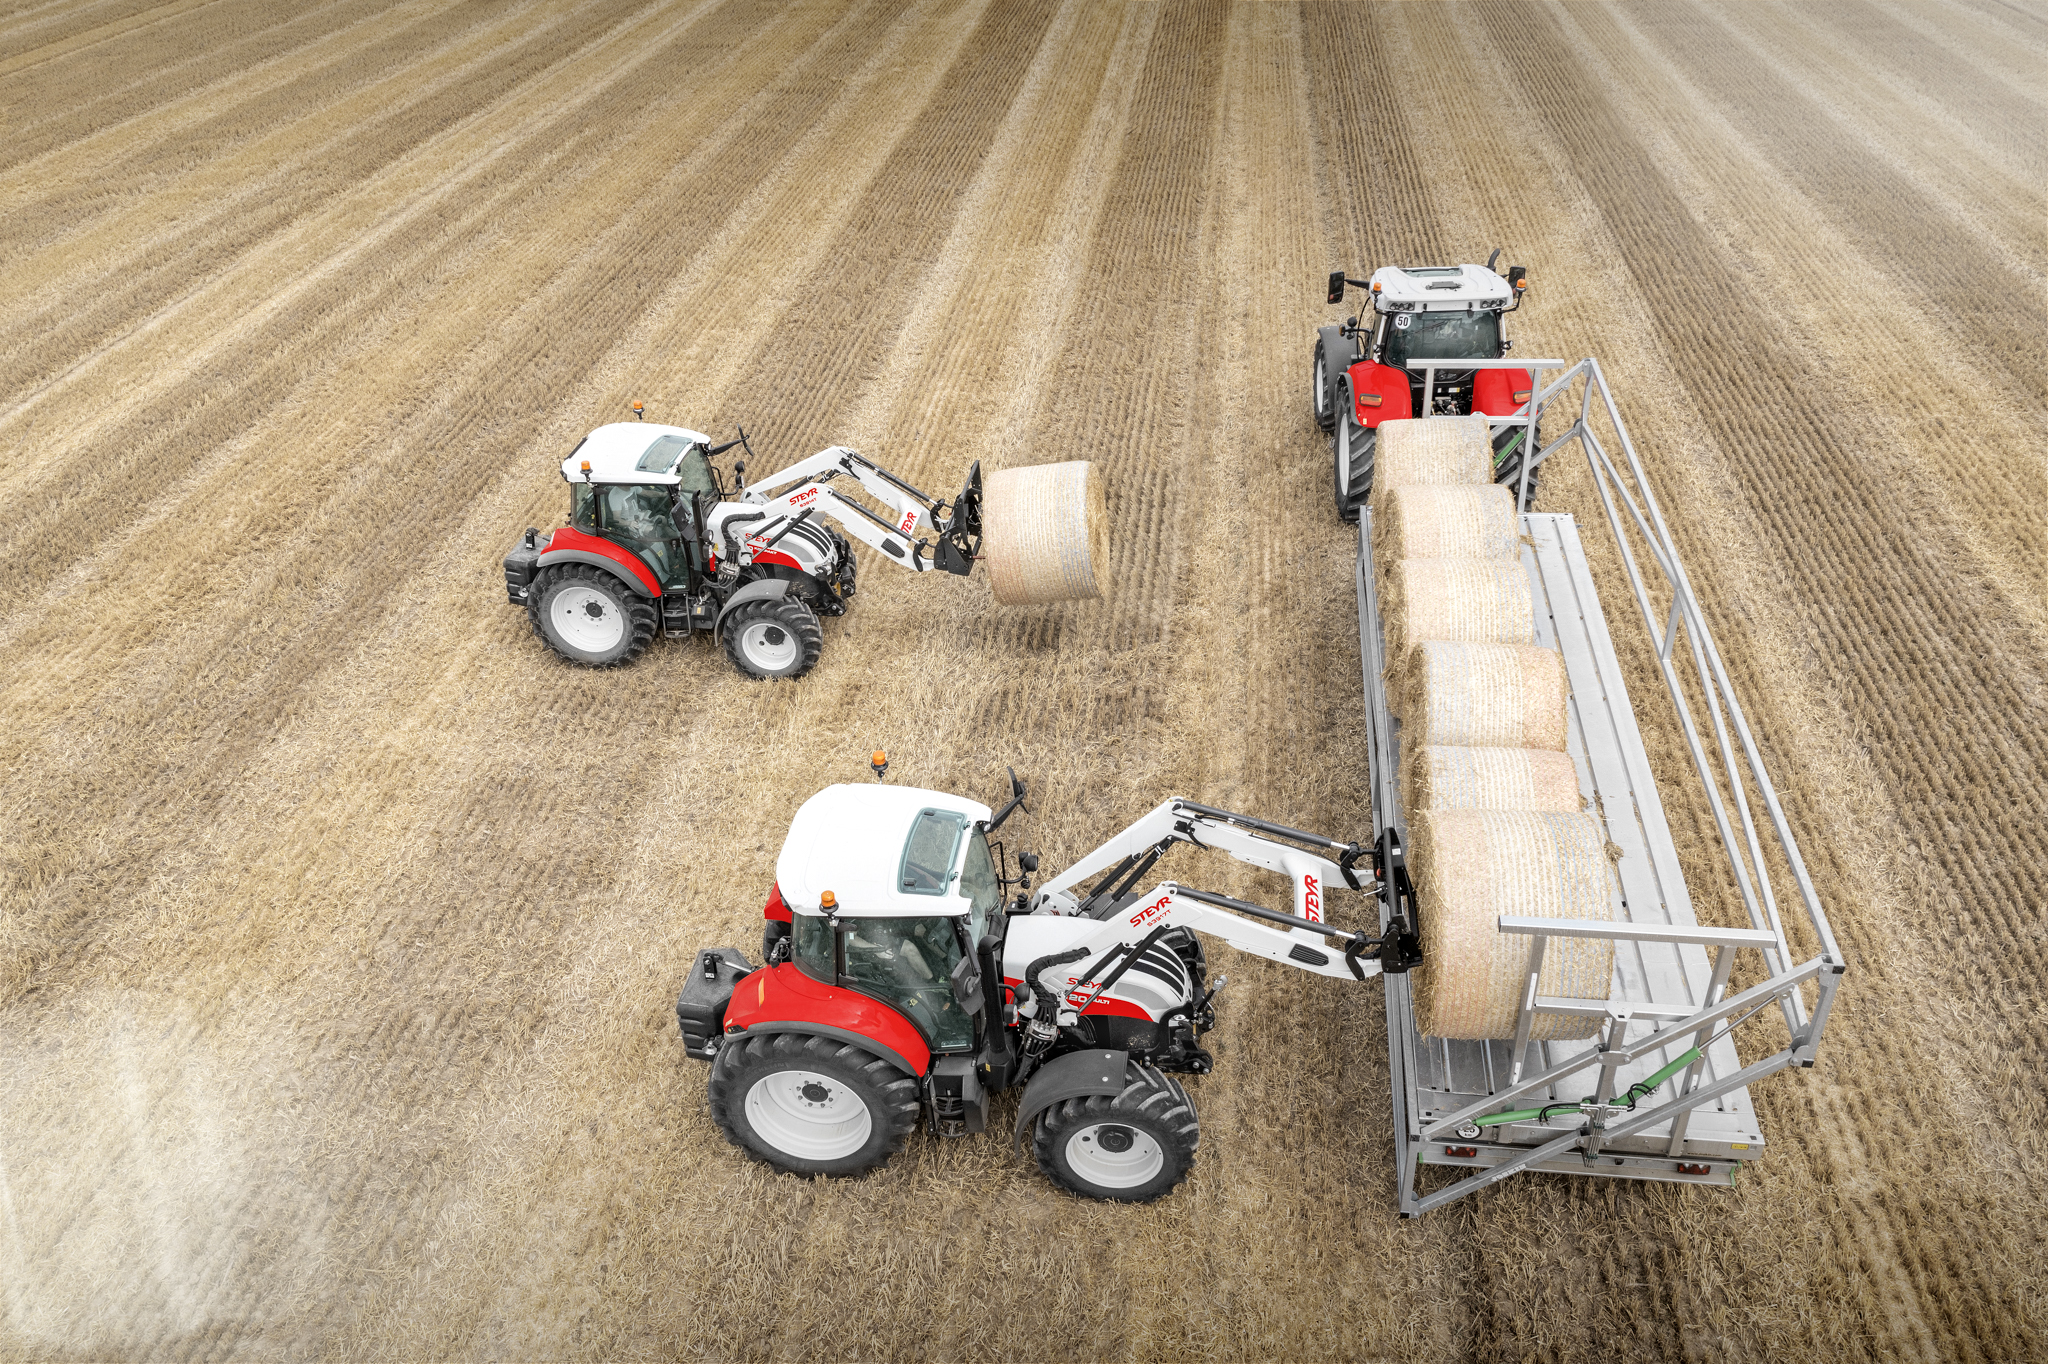 STEYR New Front Loader S3814T with 4110 Kompakt and S3917T with 4120 Multi